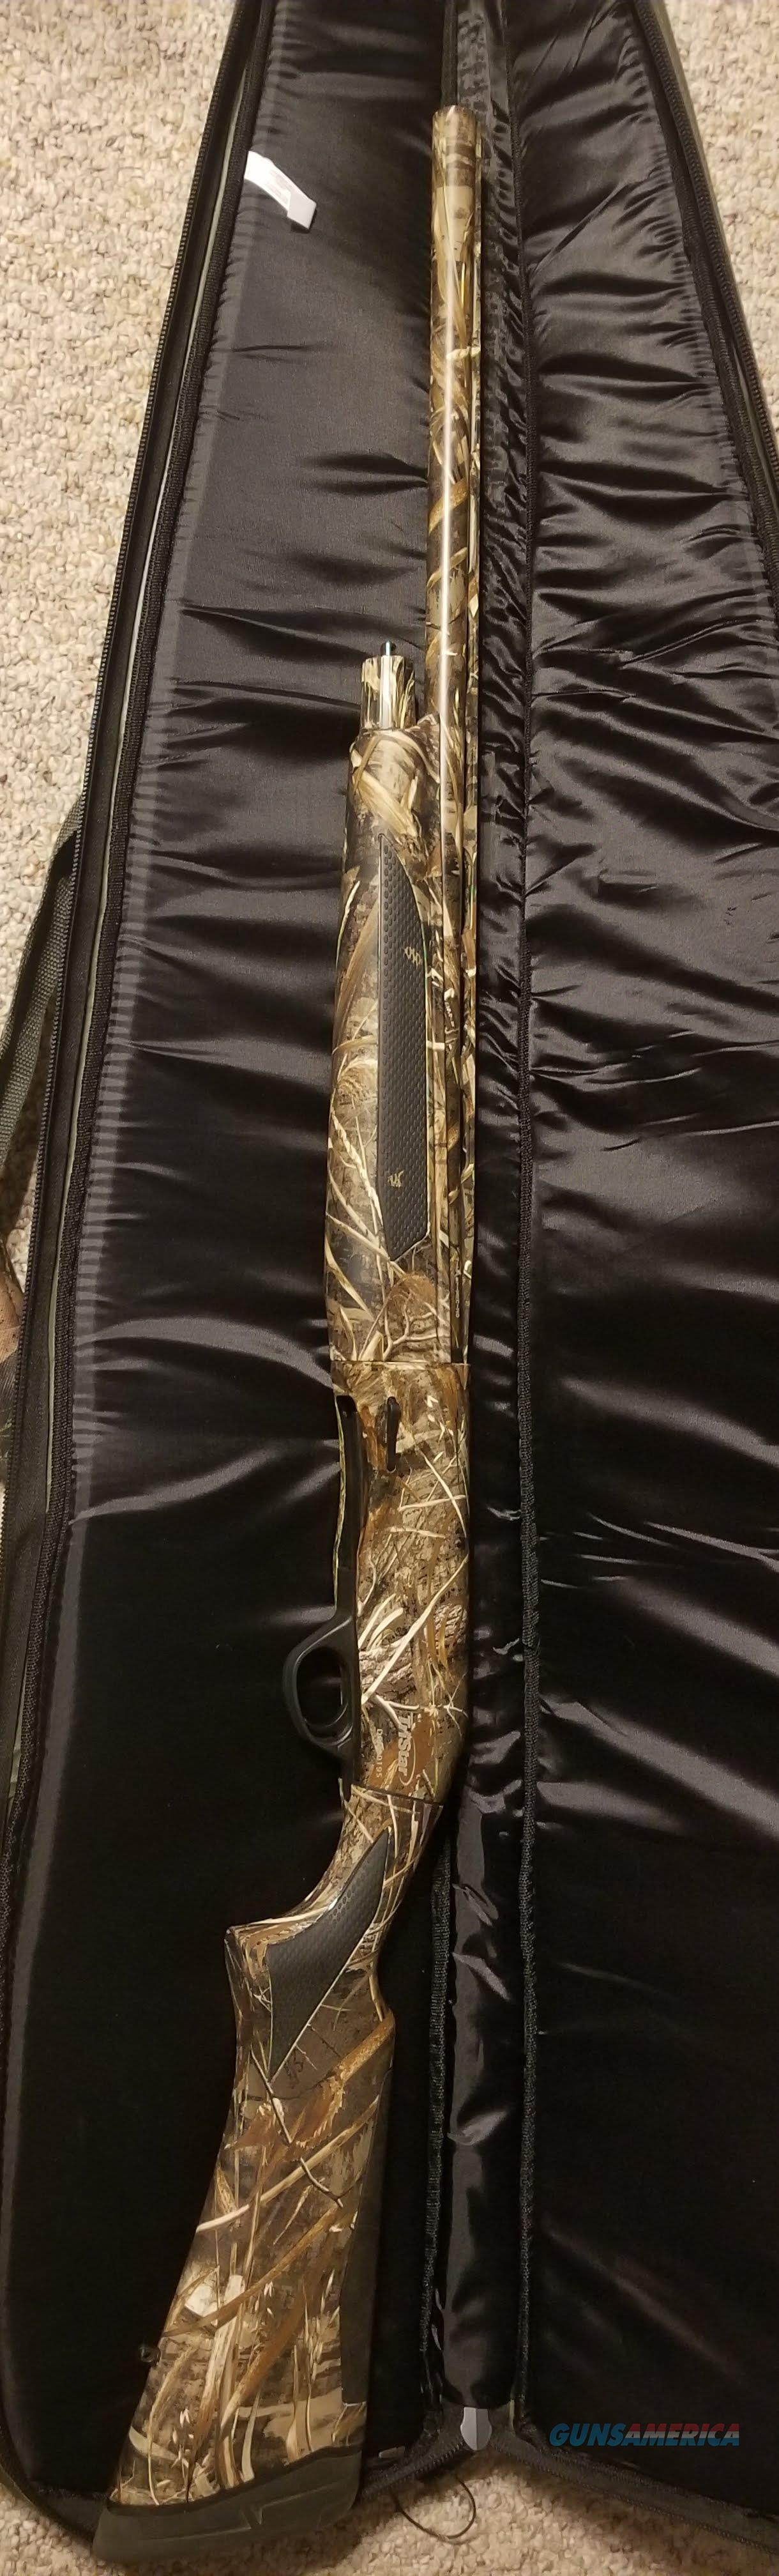 (Reduced Price) TRISTAR VIPER MAX SEMI AUTO SHOTGUN 12 GAUGE 26-INCH BARREL 3.5-INCH CHAMBER SYNTHETIC STOCK REALTREE MAX-5  Guns > Shotguns > Tristar Shotguns